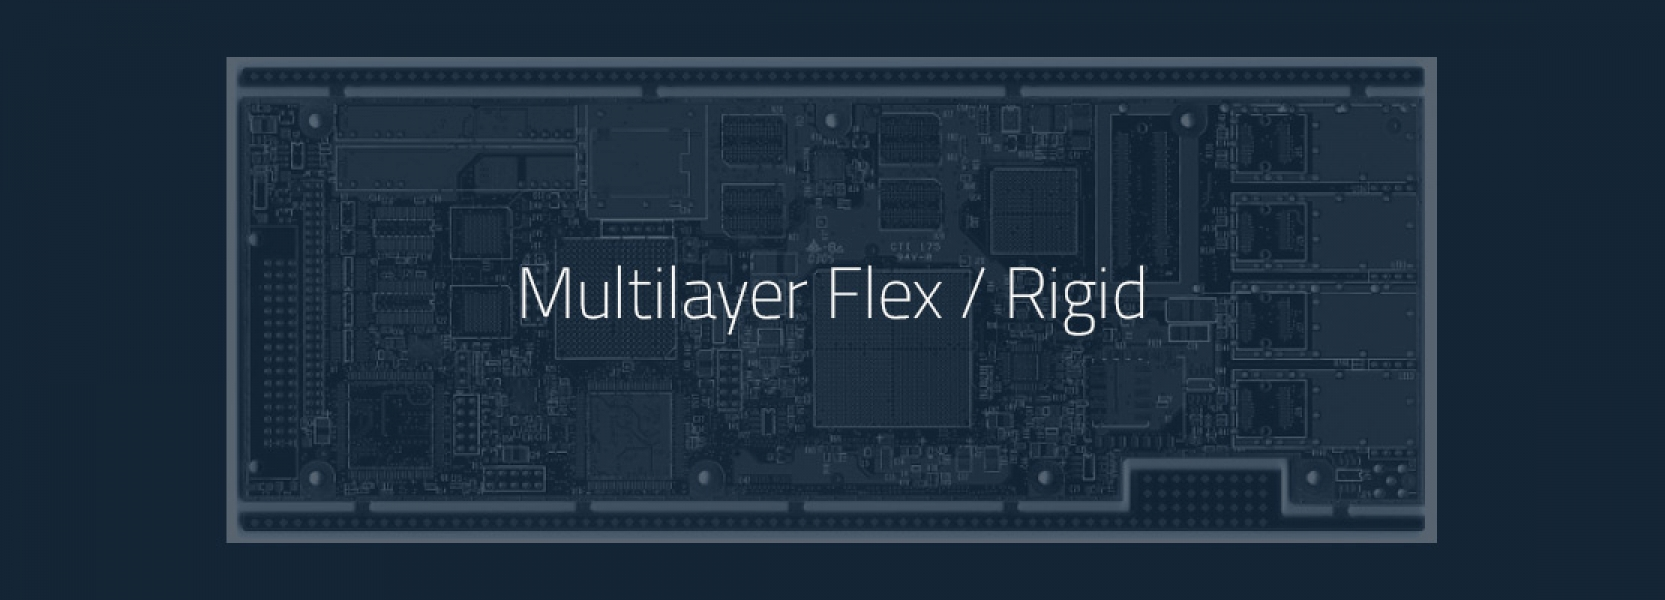 Multilayer Flex/Rigid